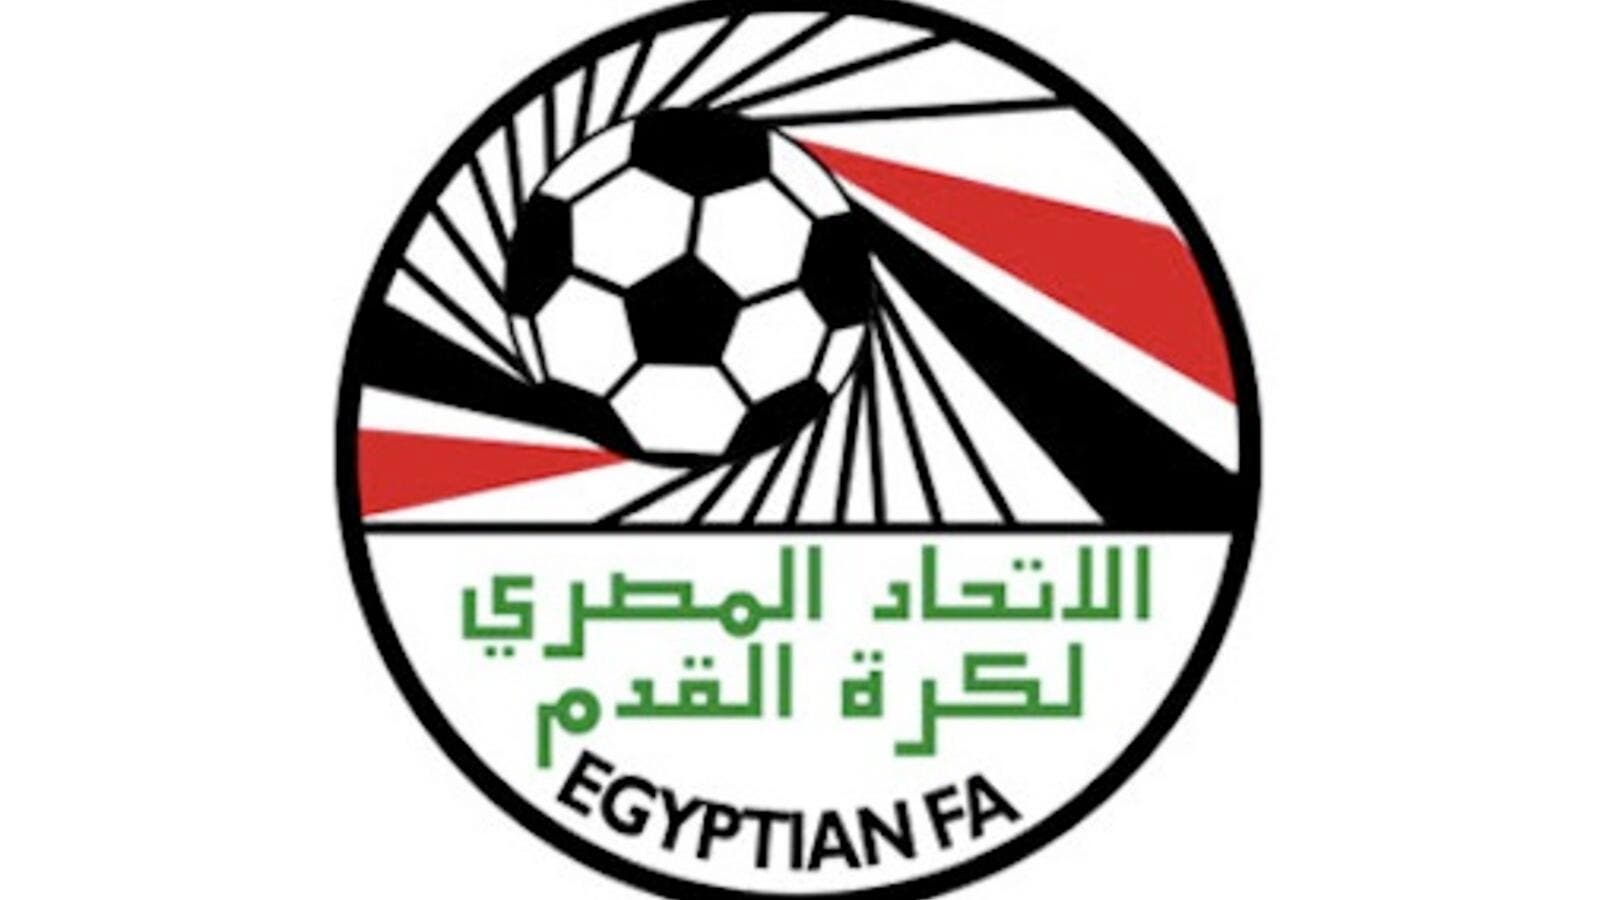 The Egyptian Football Federation logo